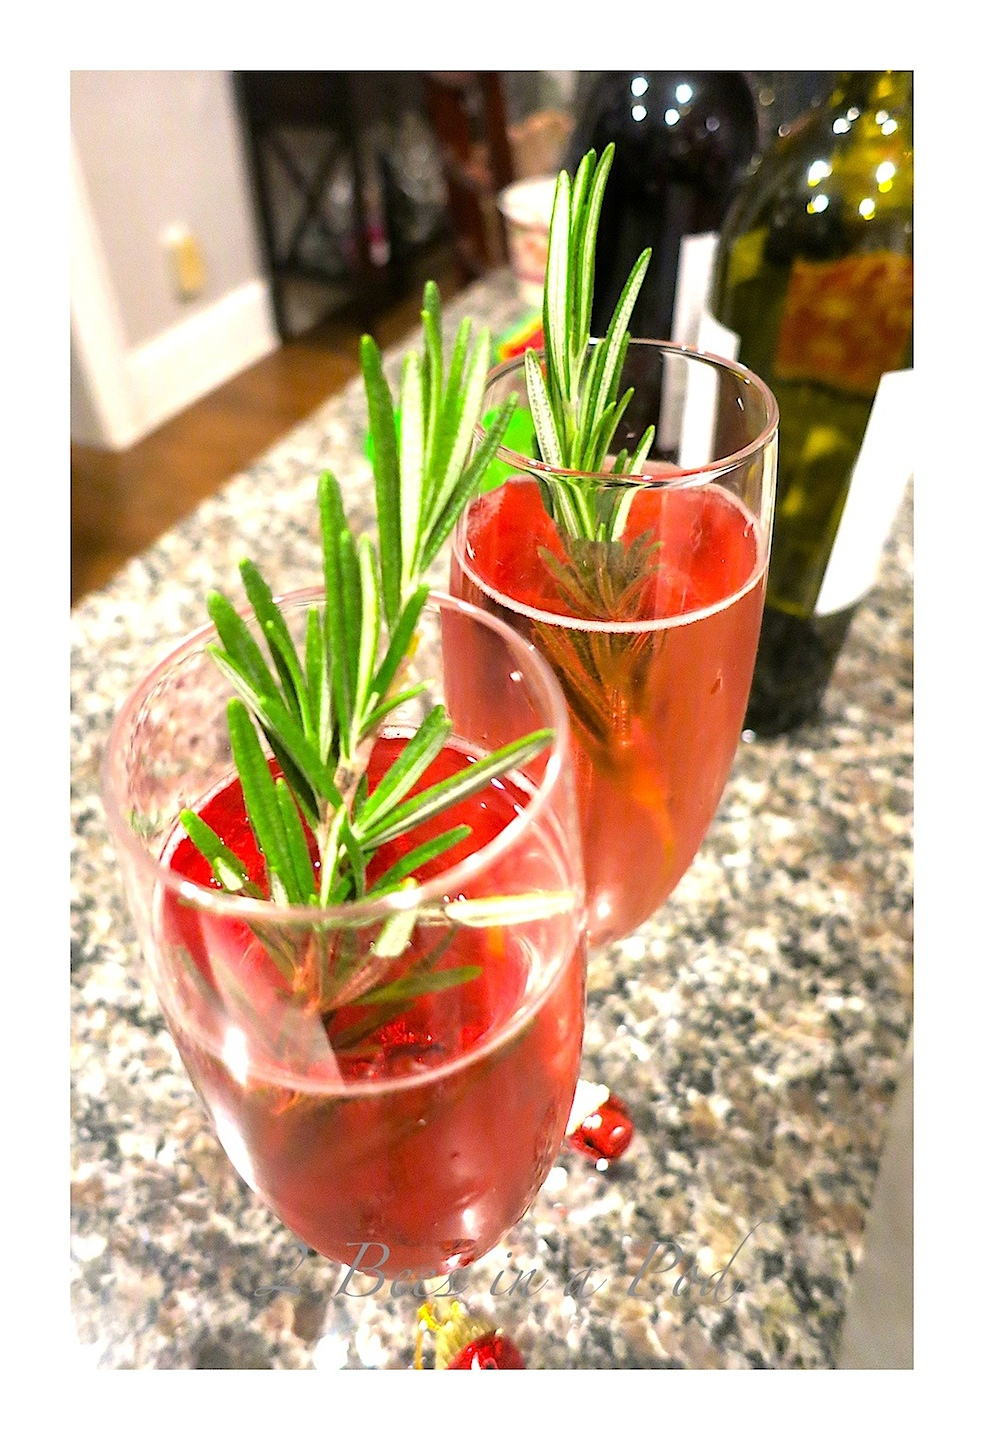 Poinsettia Cocktail - Prosecco, cranberry Juice and Rosemary garnish